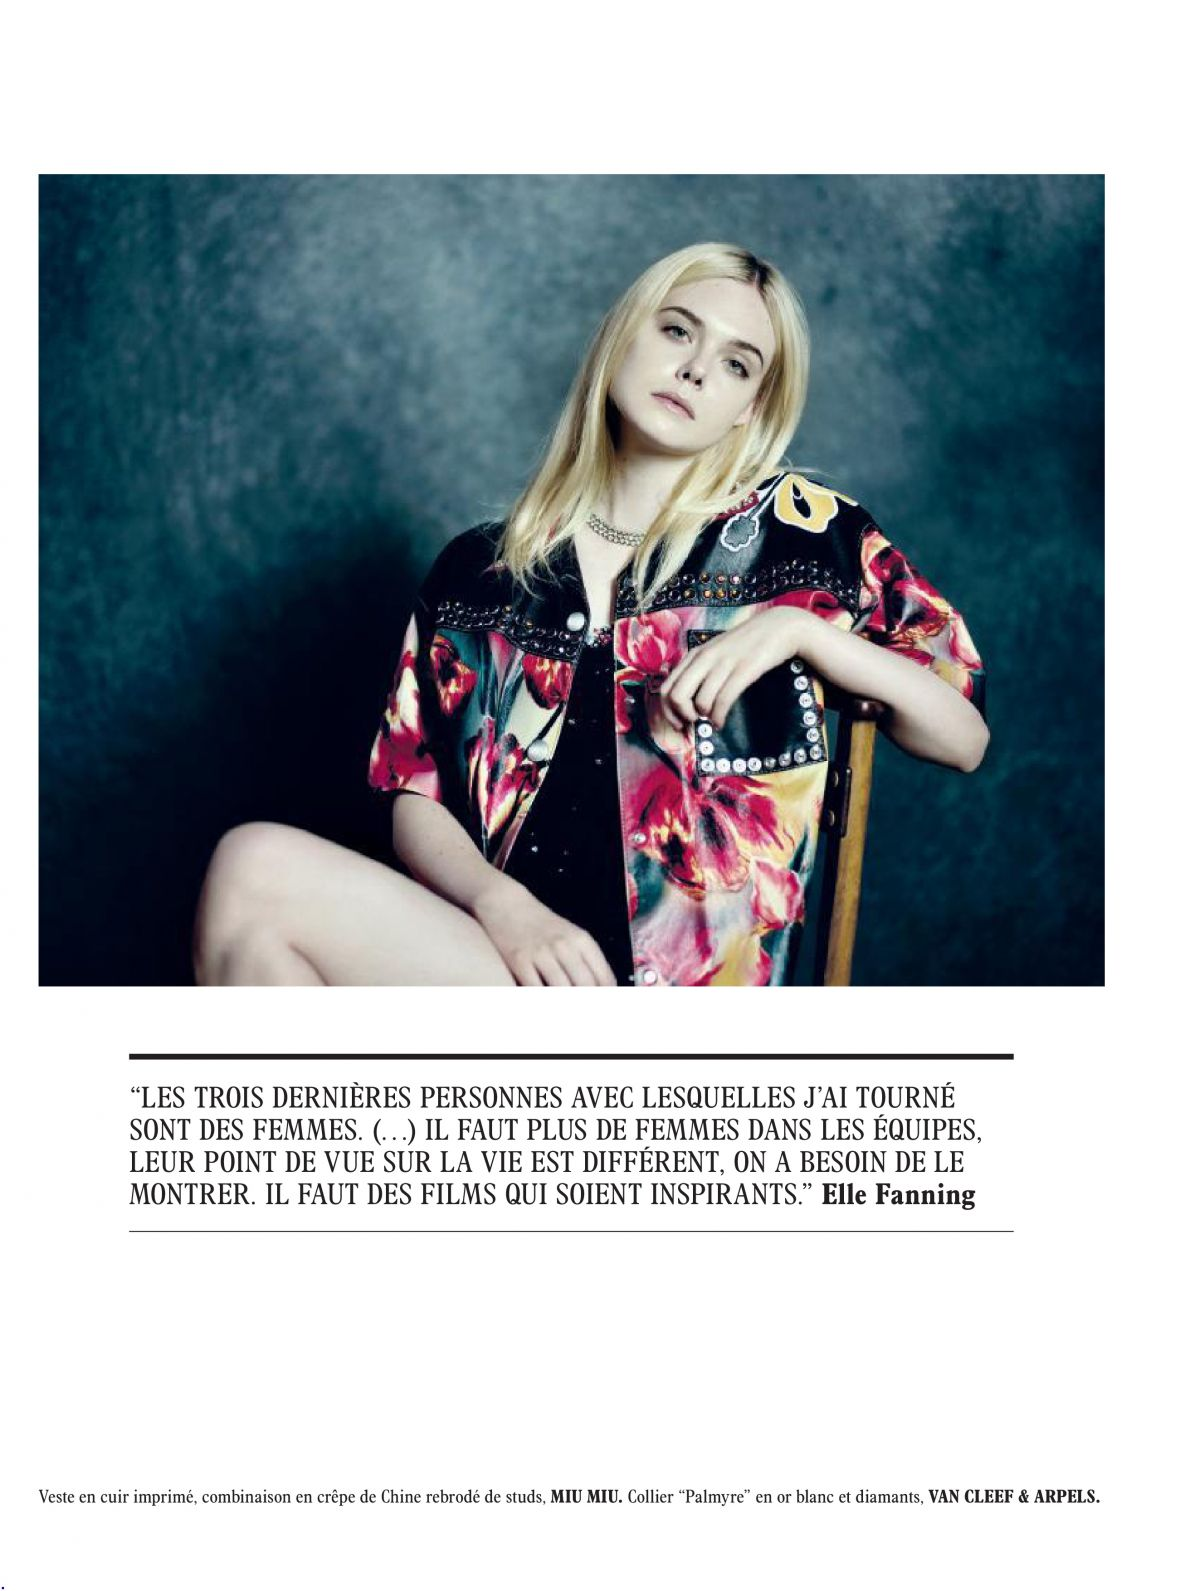 Elle Fanning Photoshoot for L'Officiel Paris, December/January 2017-2018